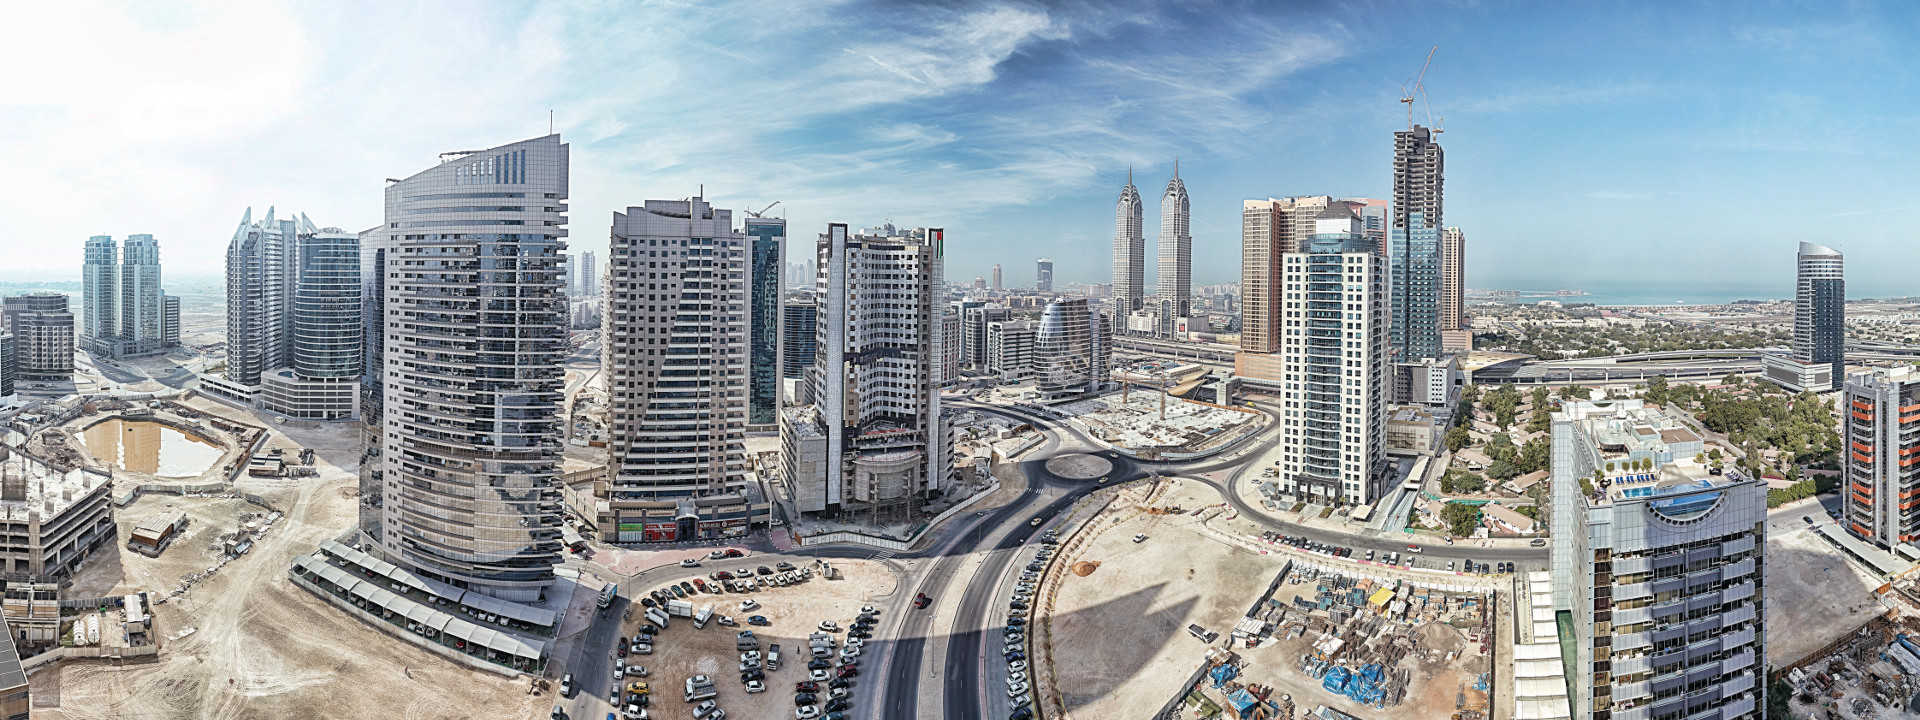 Transactions worth AED 77 billion was  made in Dubai's real estate sector in the first quarter of 2017.